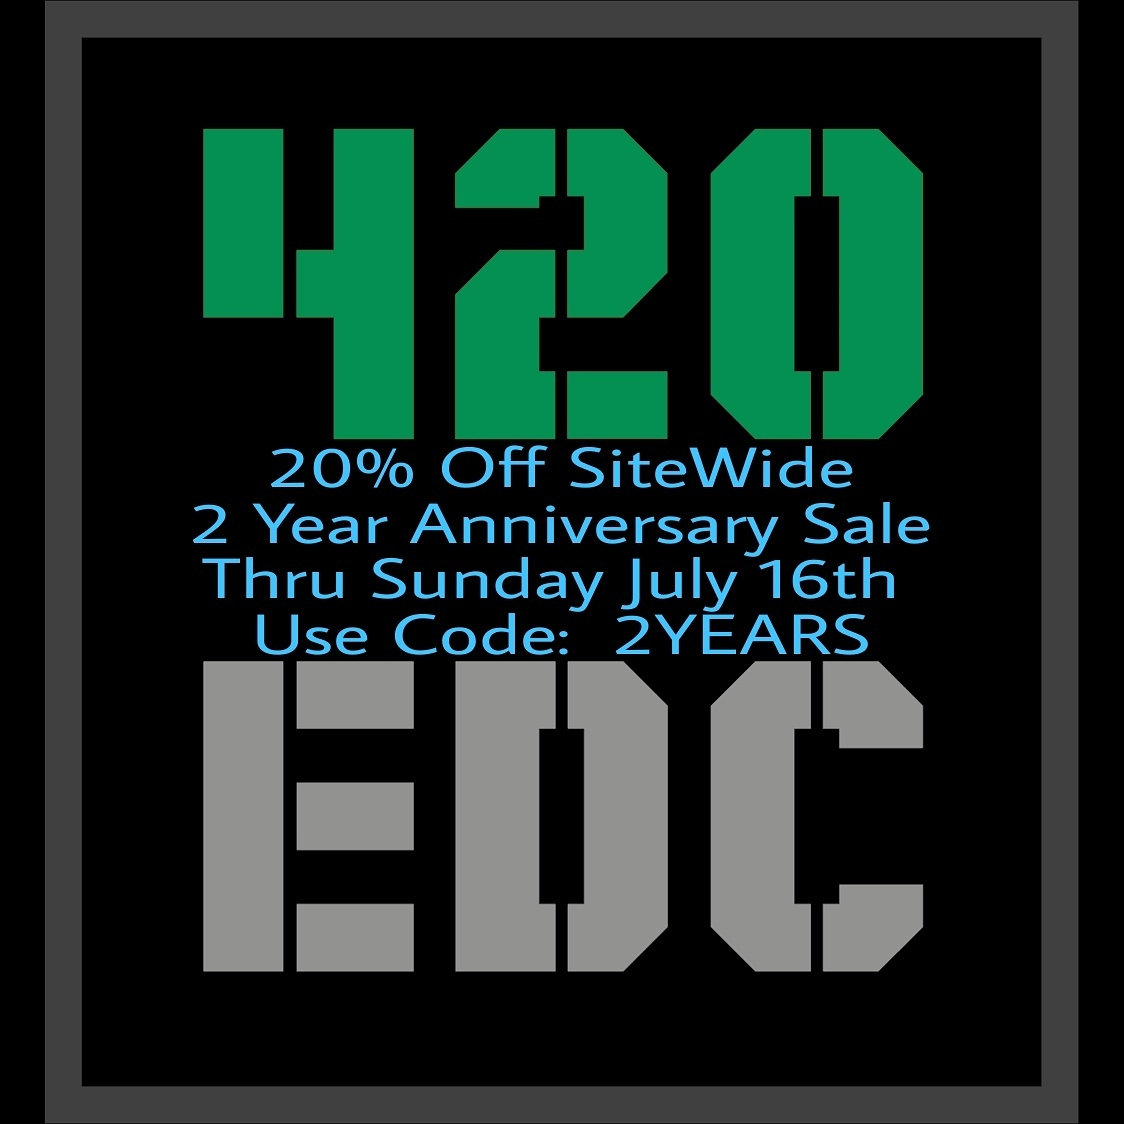 loyal supporters!! 2 Years Save - 420edc | ello